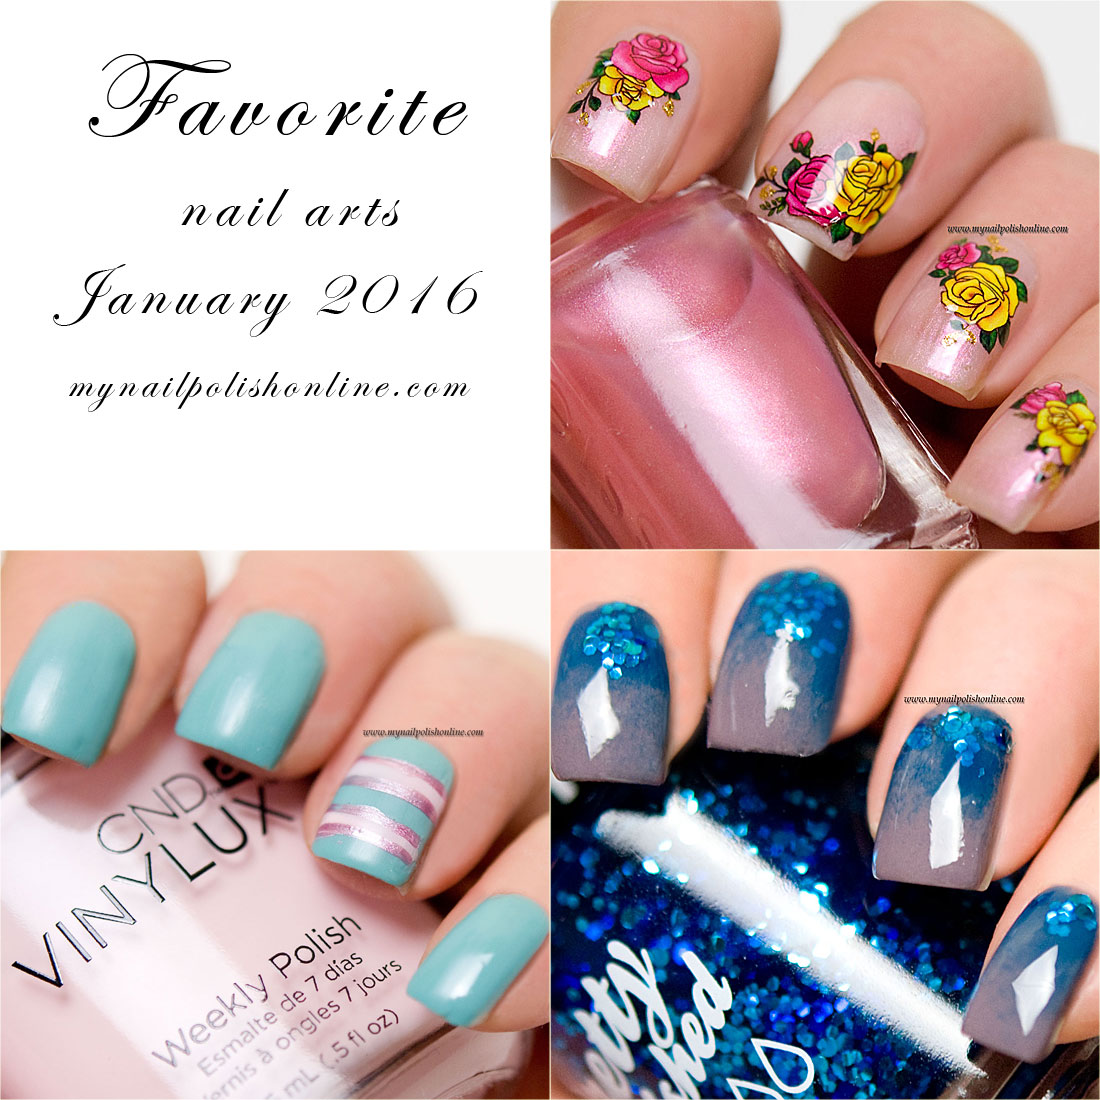 January Nail Colors: Roundup For January 2016